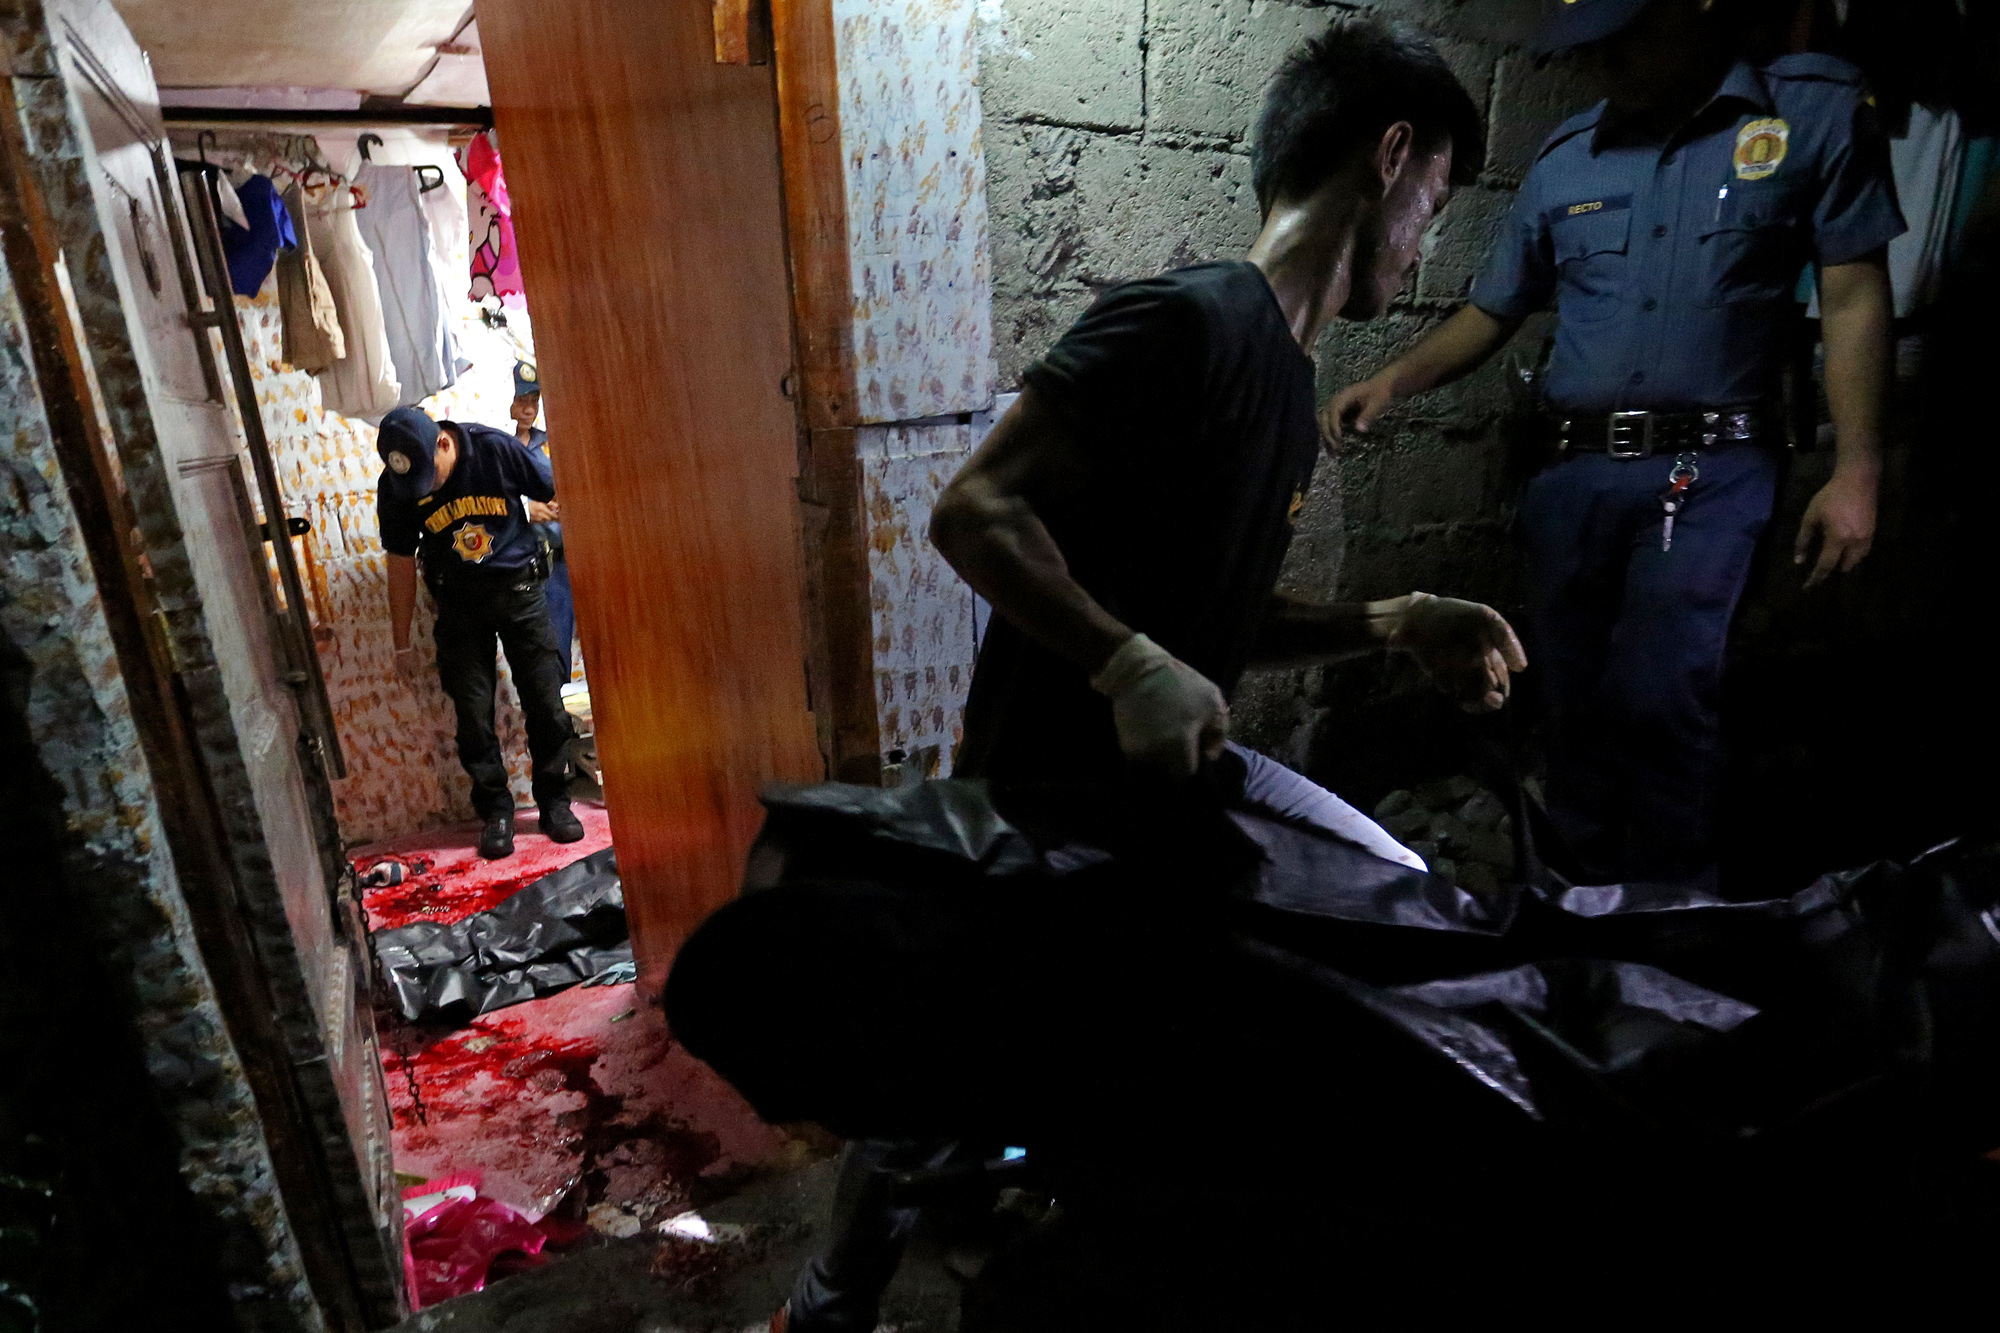 One of the four people in a drug buy-bust operation in Barangay Bagong Pag-asa, Quezon City is brought out by a coroner on October 25, 2016.